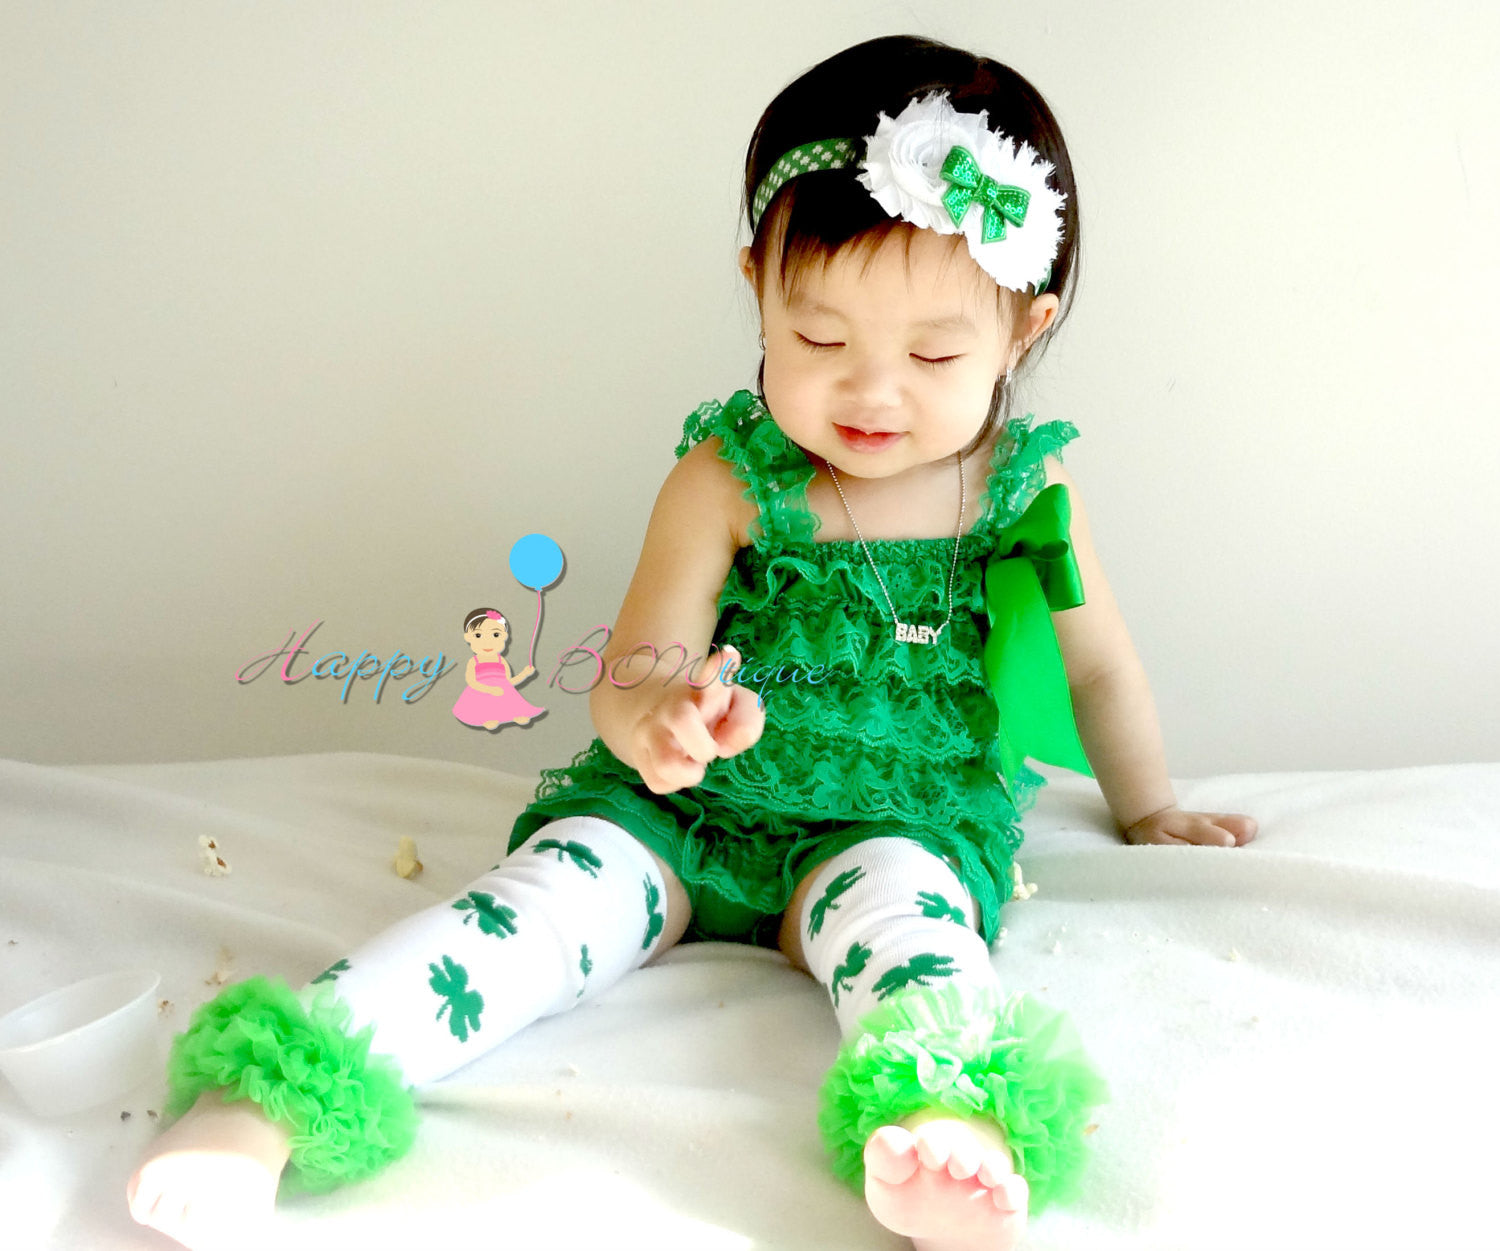 St Patricks leg warmers, St Pattys leg warmers, Green Clover leg warmers, St Patricks - Happy BOWtique - children's clothing, Baby Girl clothing